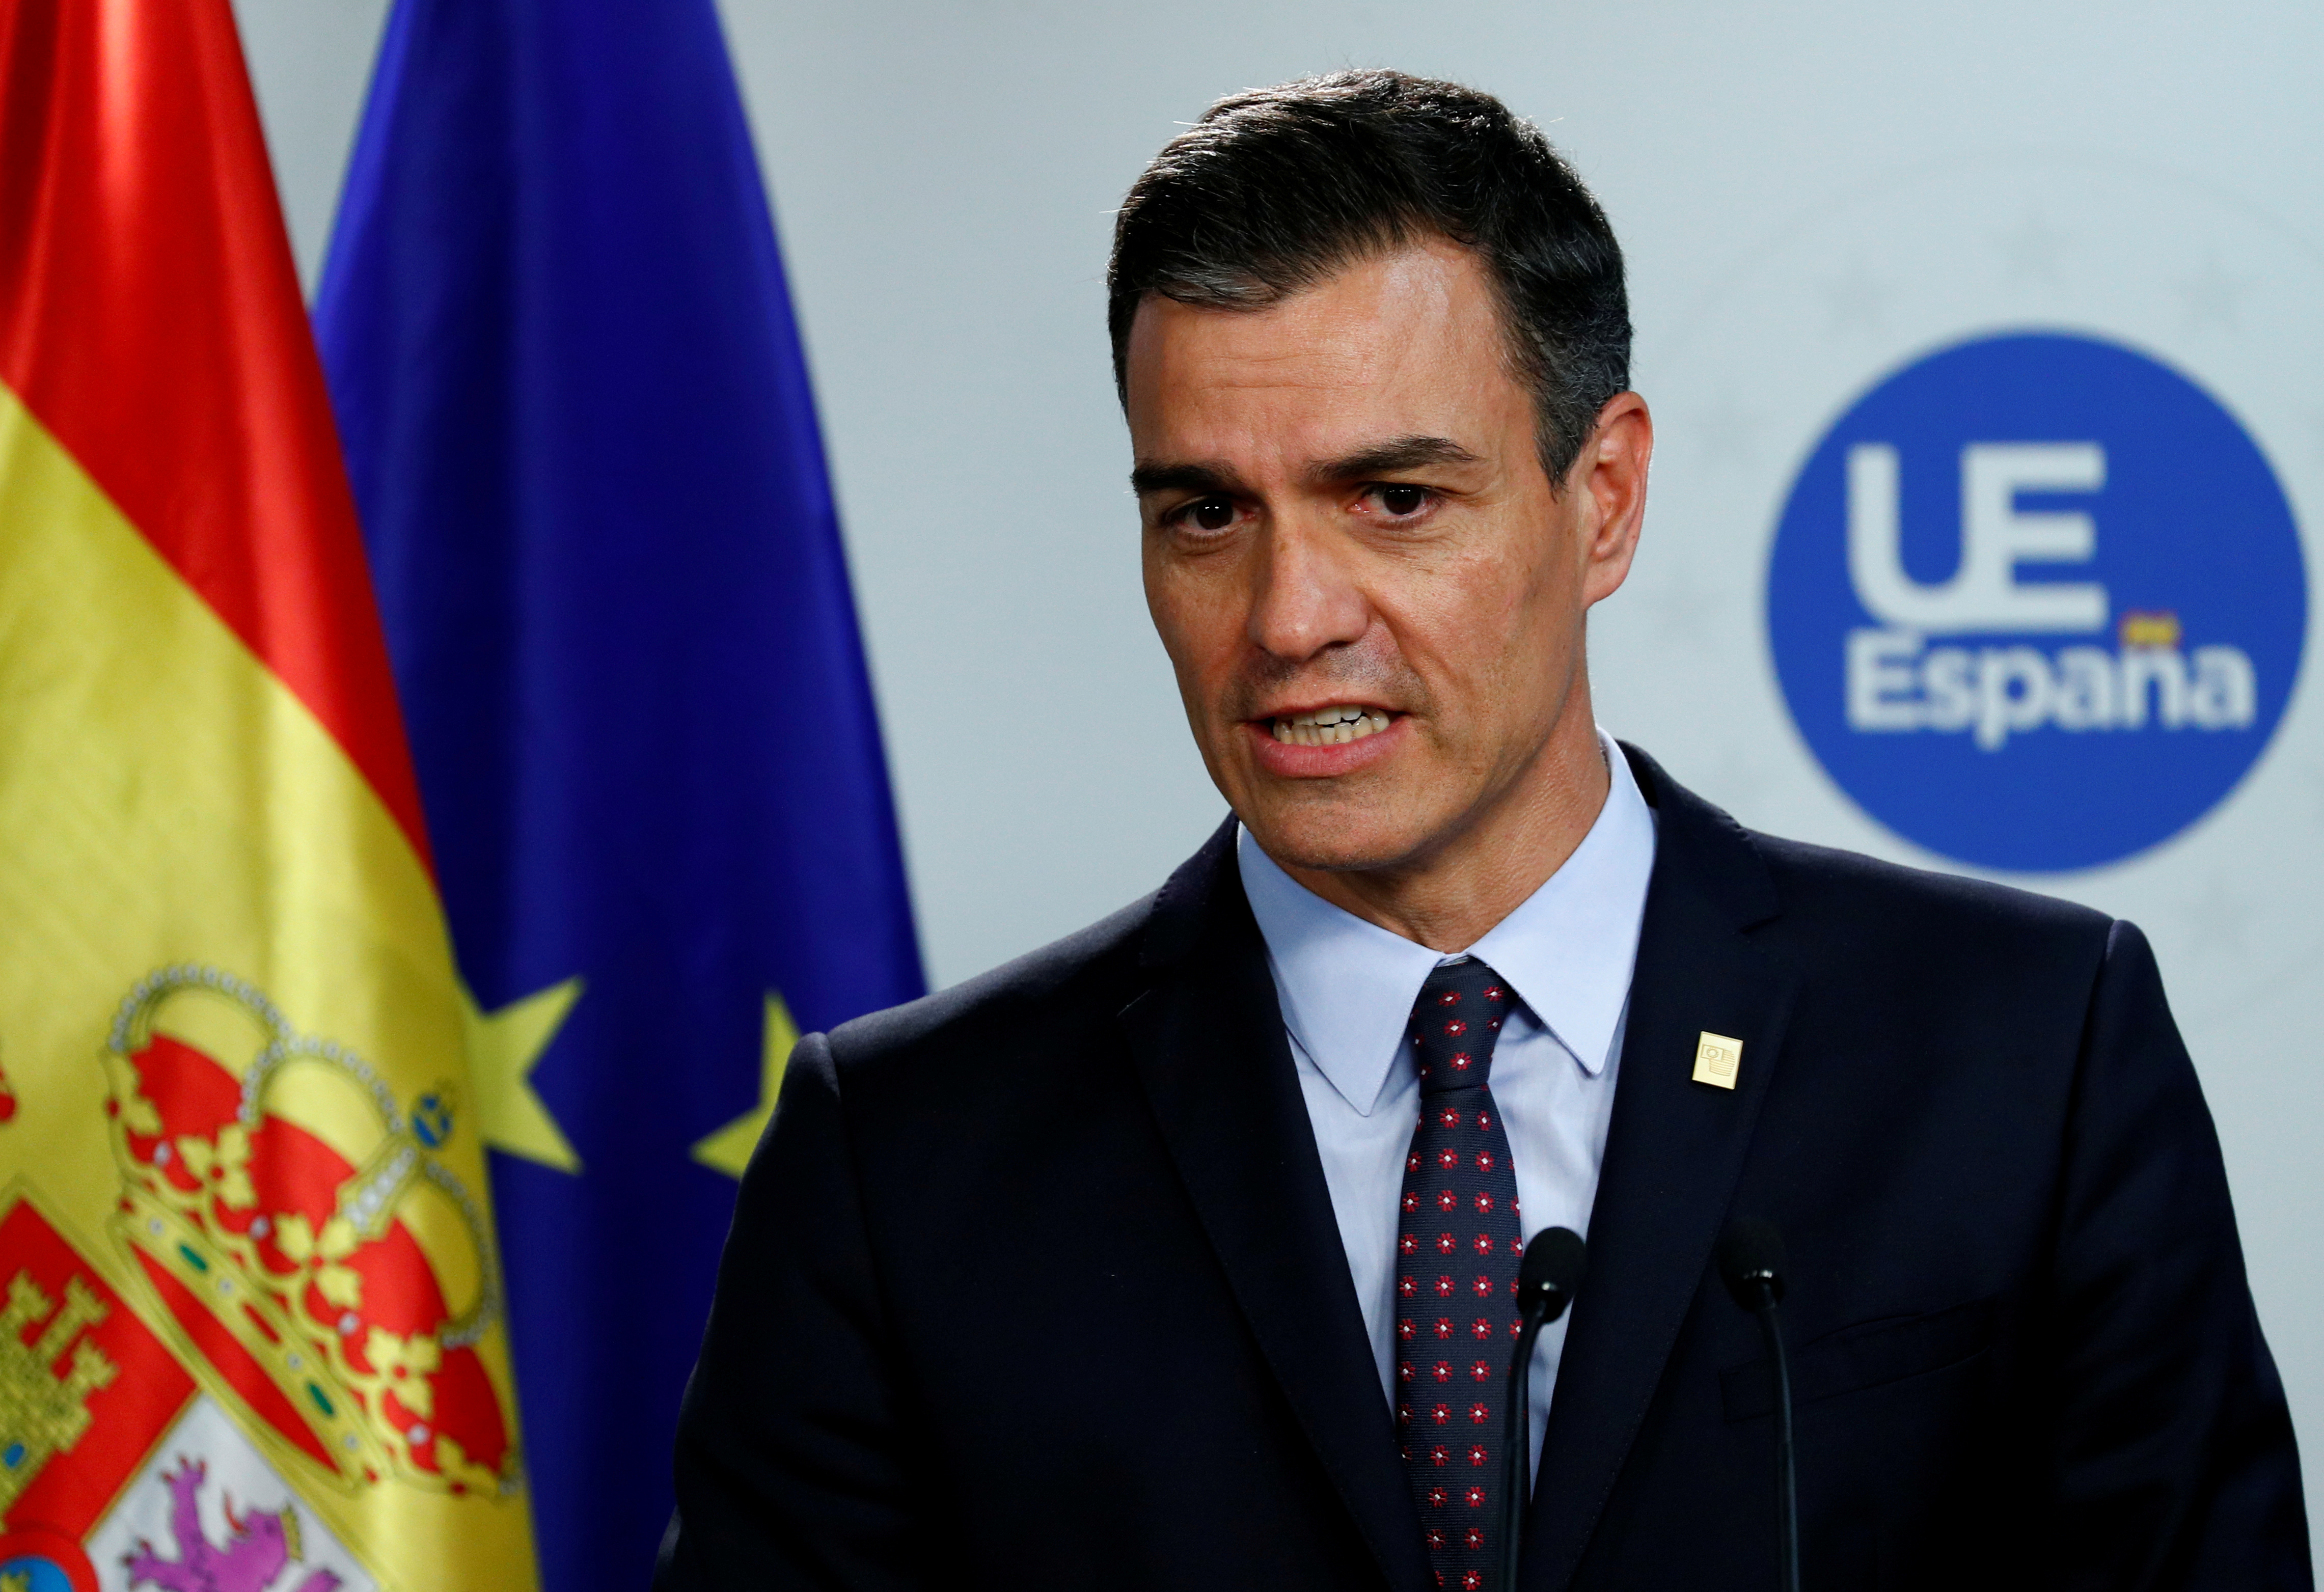 FILE PHOTO: Spanish Prime Minister Pedro Sanchez attends a news conference after the European Union leaders summit, in Brussels, Belgium, July 2, 2019. REUTERS/Francois Lenoir/File Photo